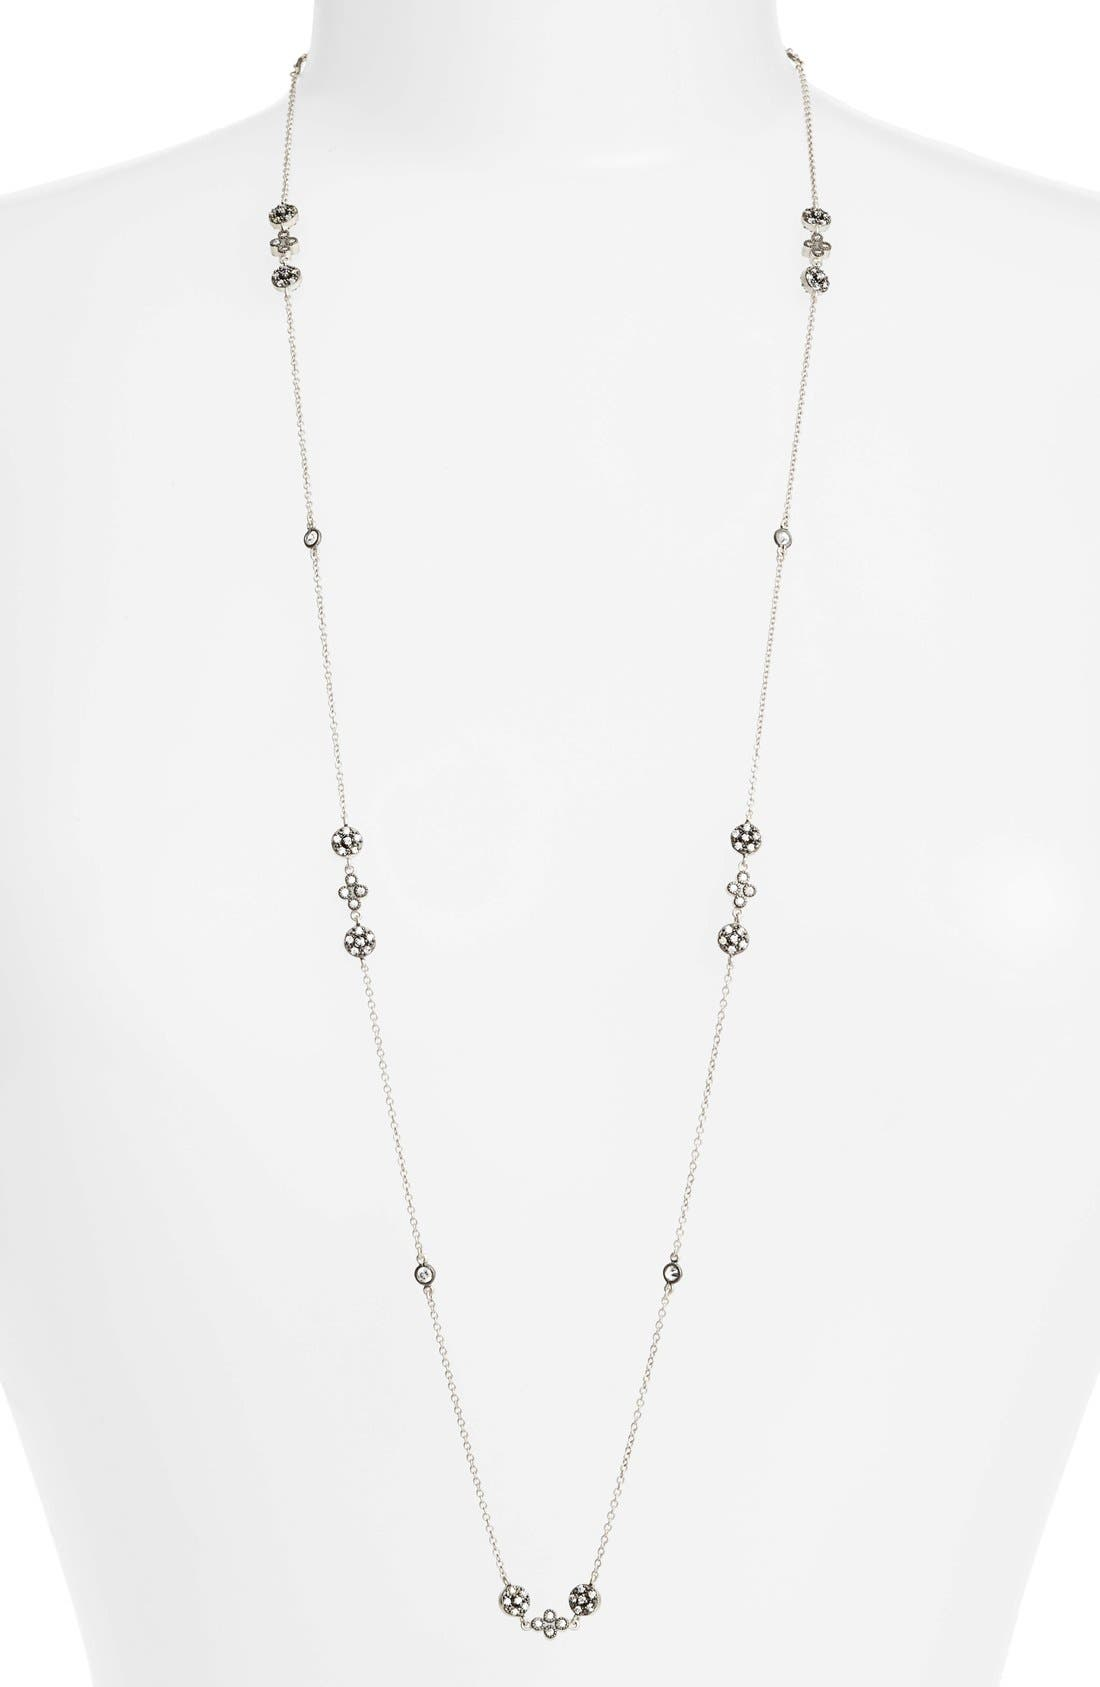 FREIDA ROTHMAN Metropolitan Long Station Necklace